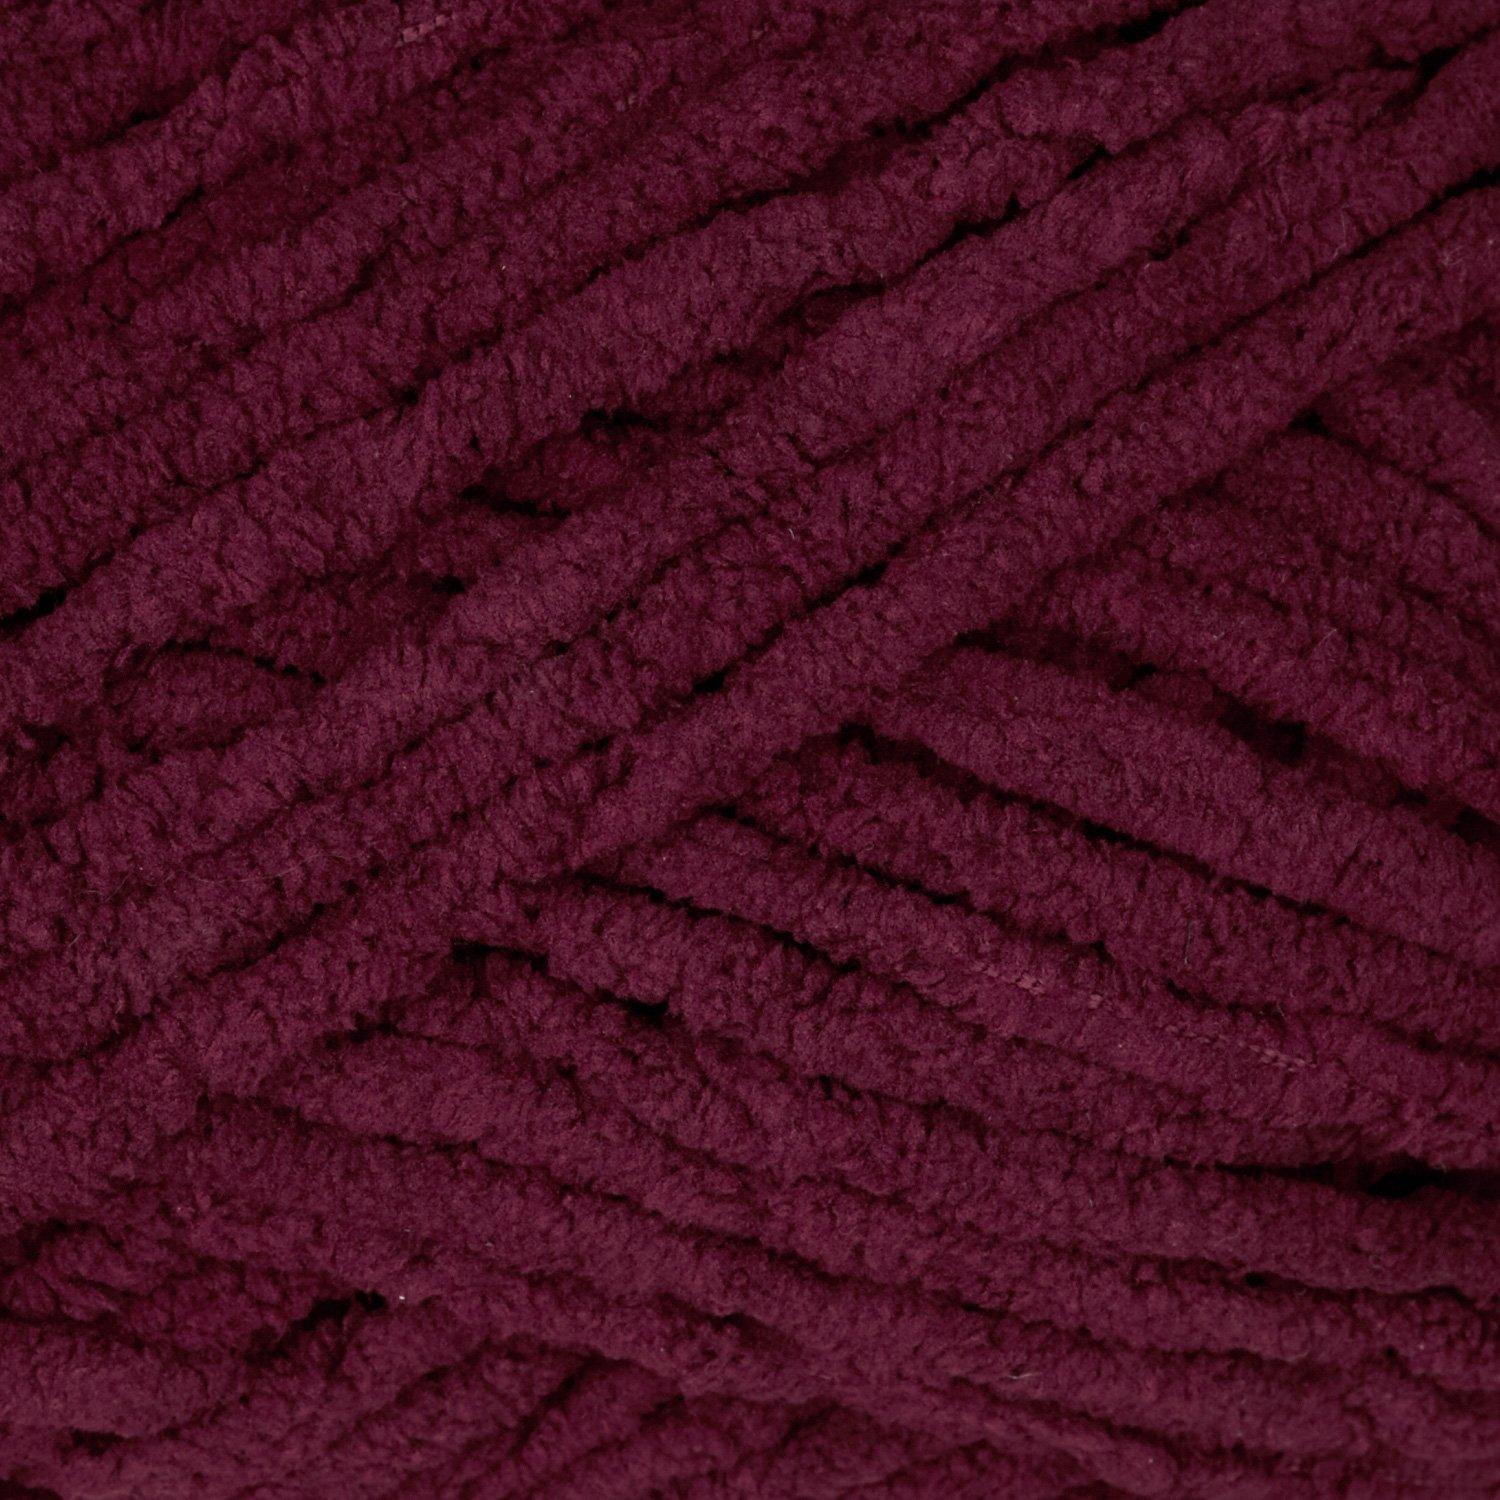 Bernat Blanket Big Ball Yarn (10430) Purple Plum 1481 West Second Street 0345865